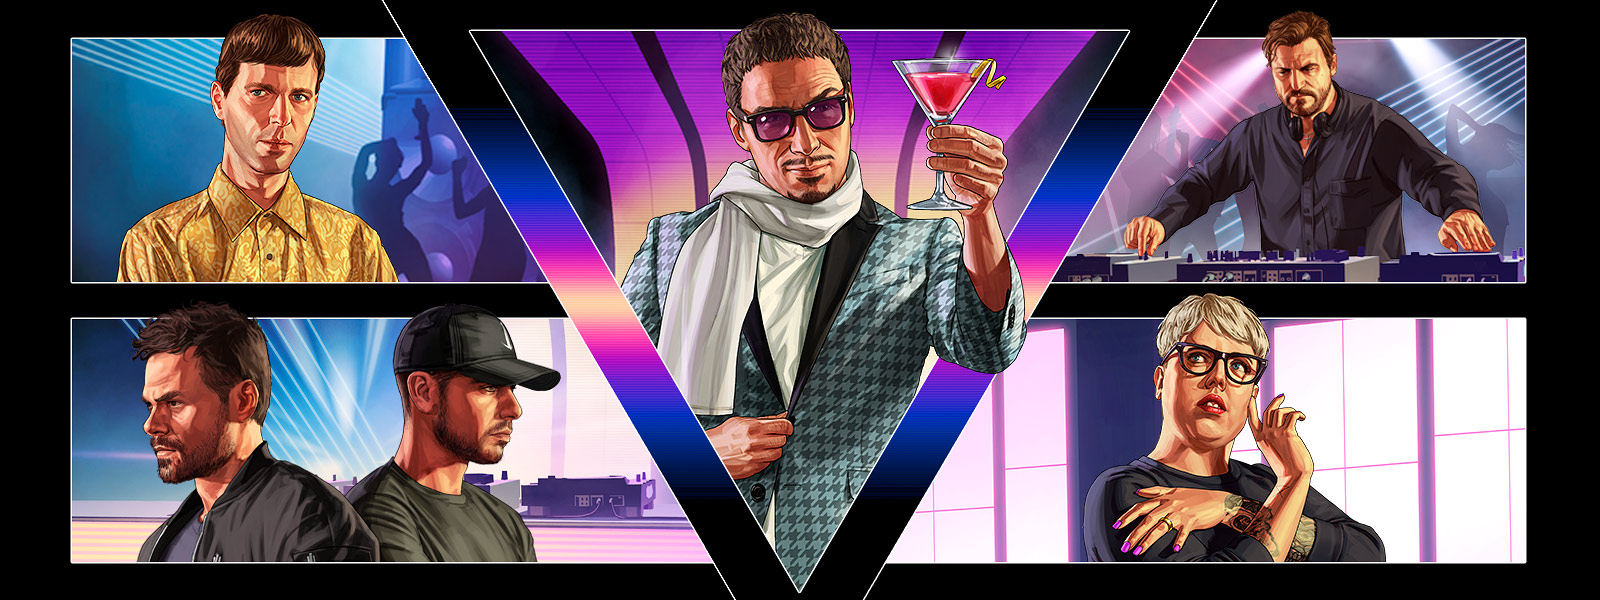 Grand Theft Auto Online After Hours, Collage of multiple characters in a nightclub